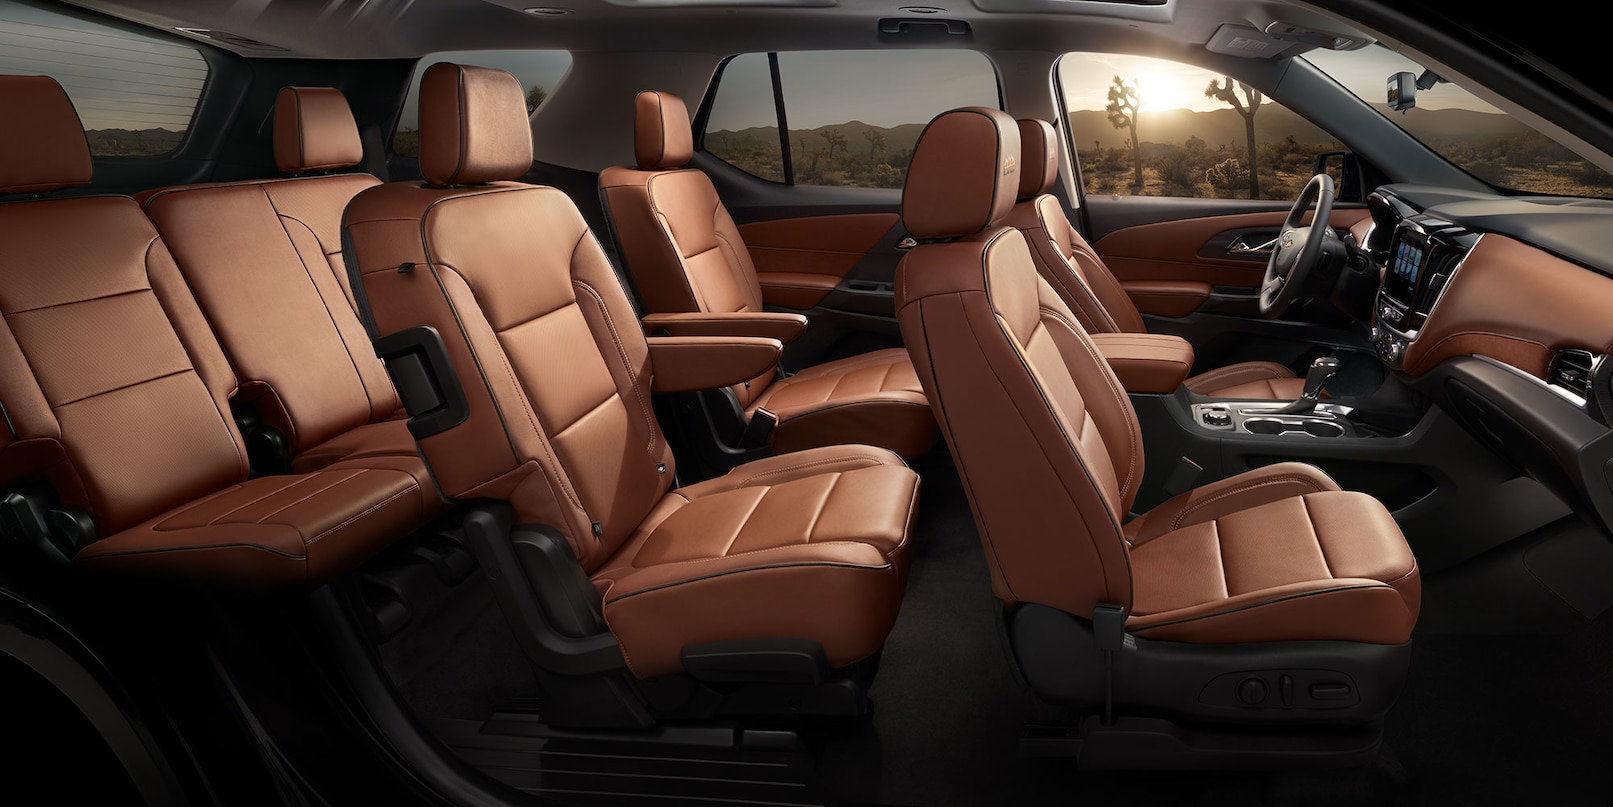 Commodious Cabin of the 2020 Traverse